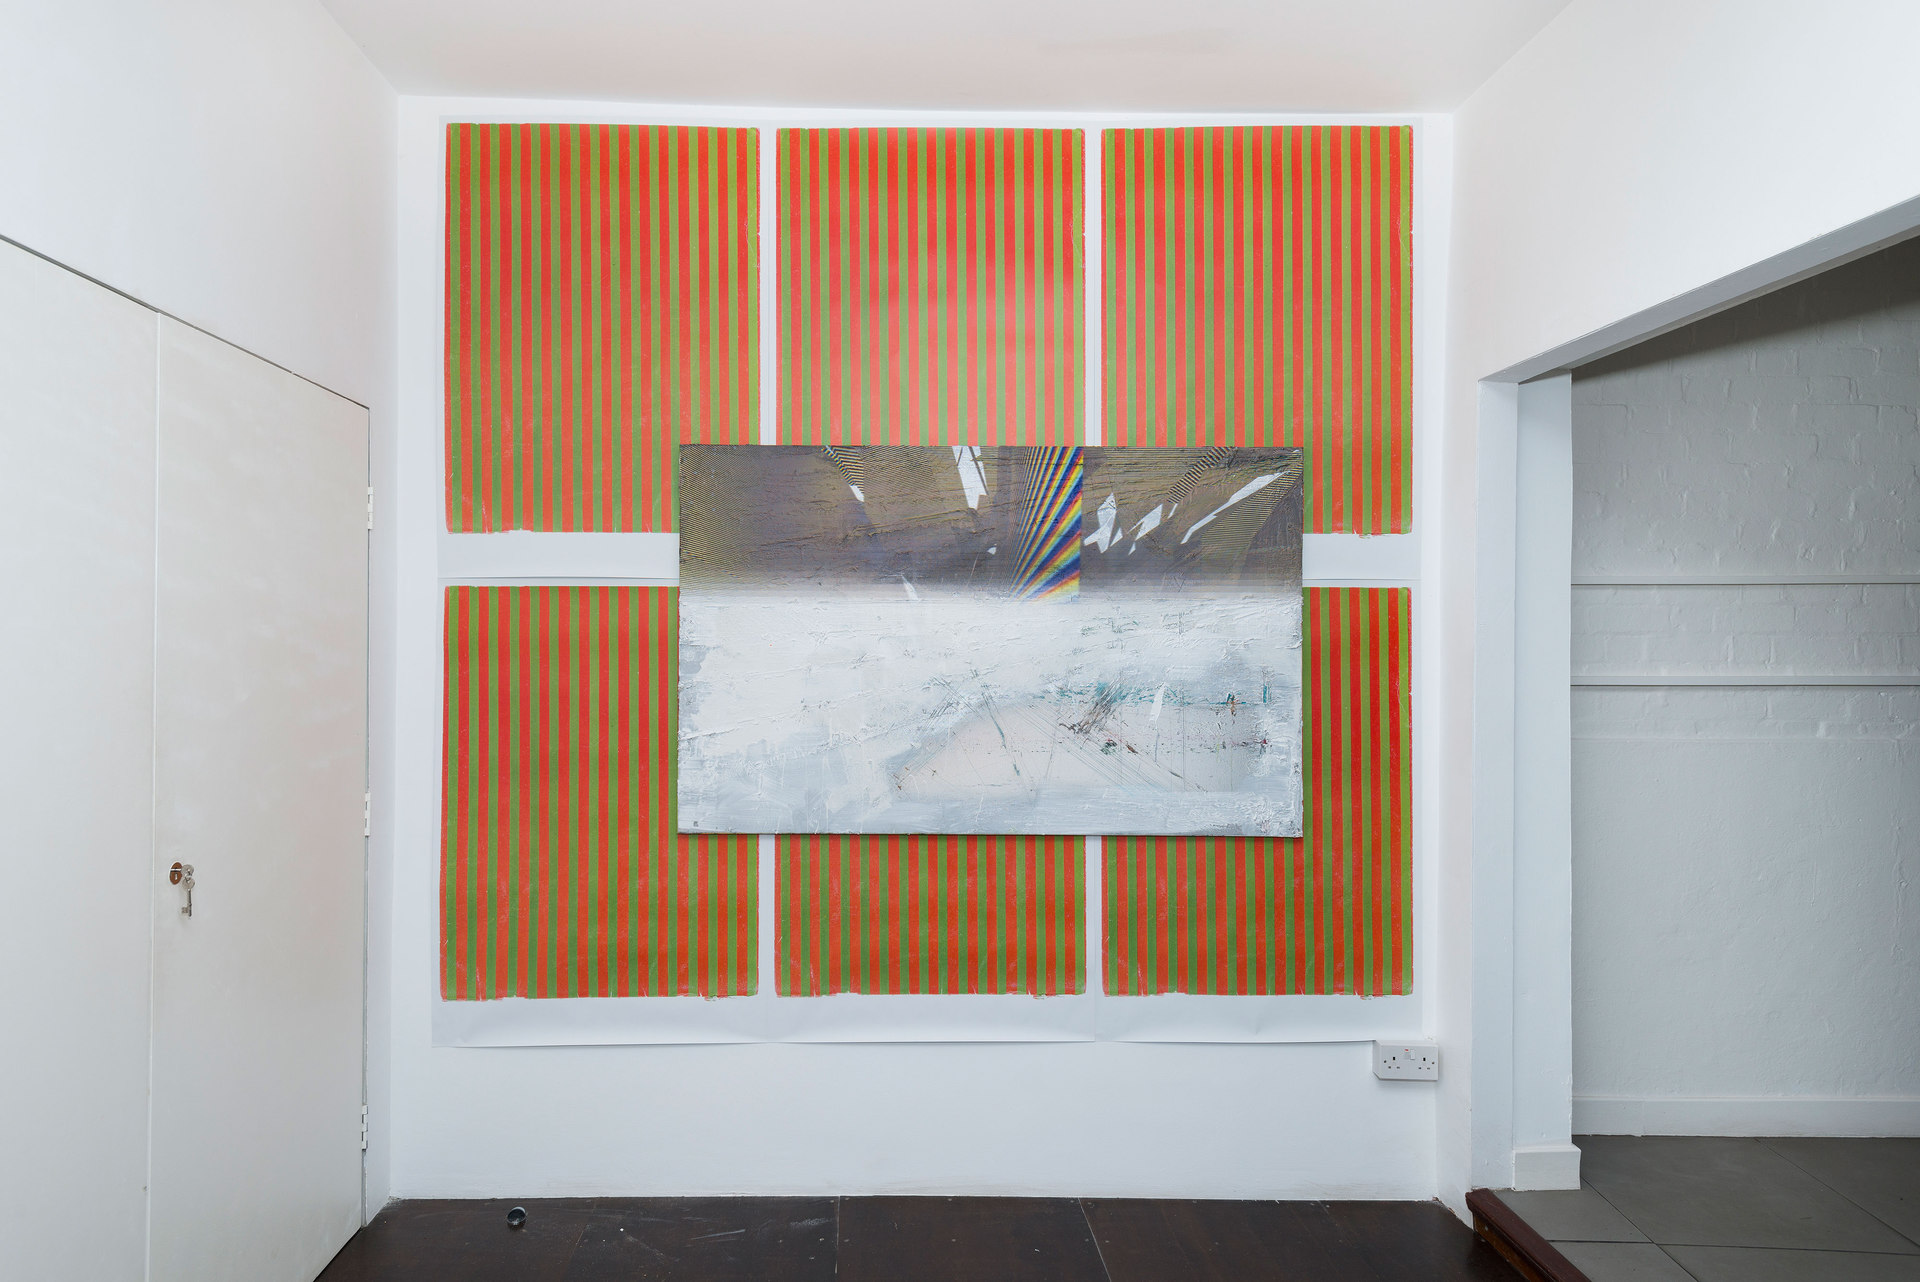 Koen Delaere, Untitled, 2013, Digital UV print, Oil on Canvas, 97cm x 160cm, Wade Guyton, Untitled, 2012, digital litho print edition 8/100  84cm x 118cm, Cell Project Space